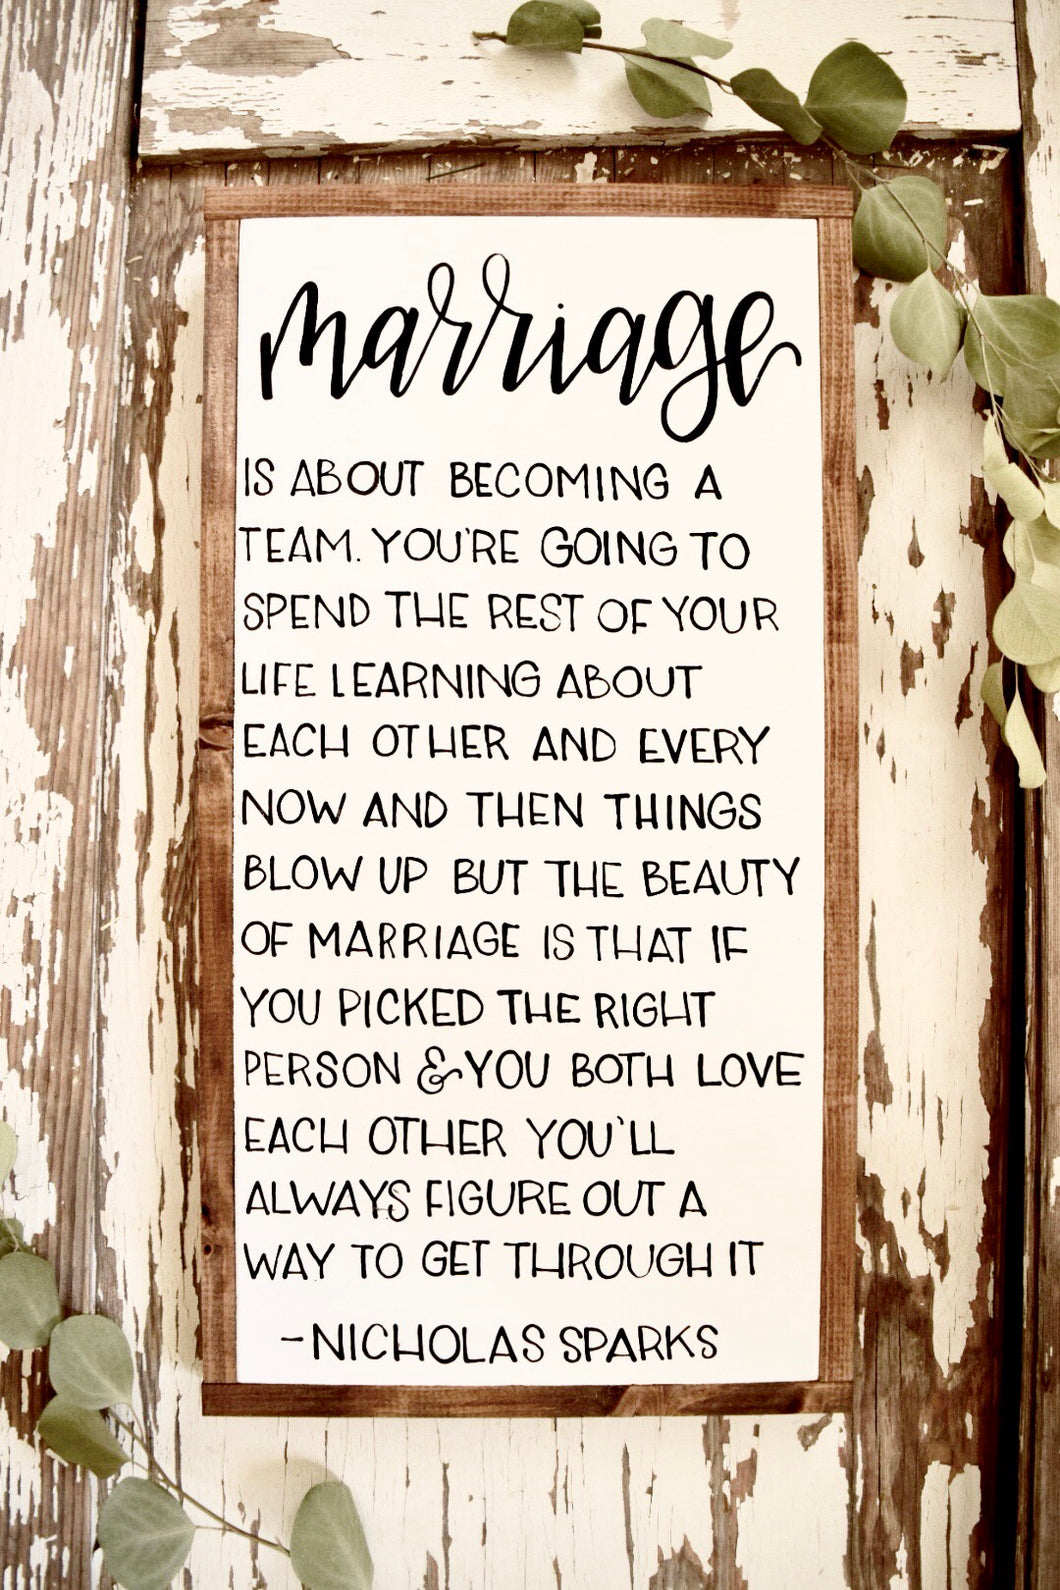 Nicholas sparks quotes marriage is about becoming a team